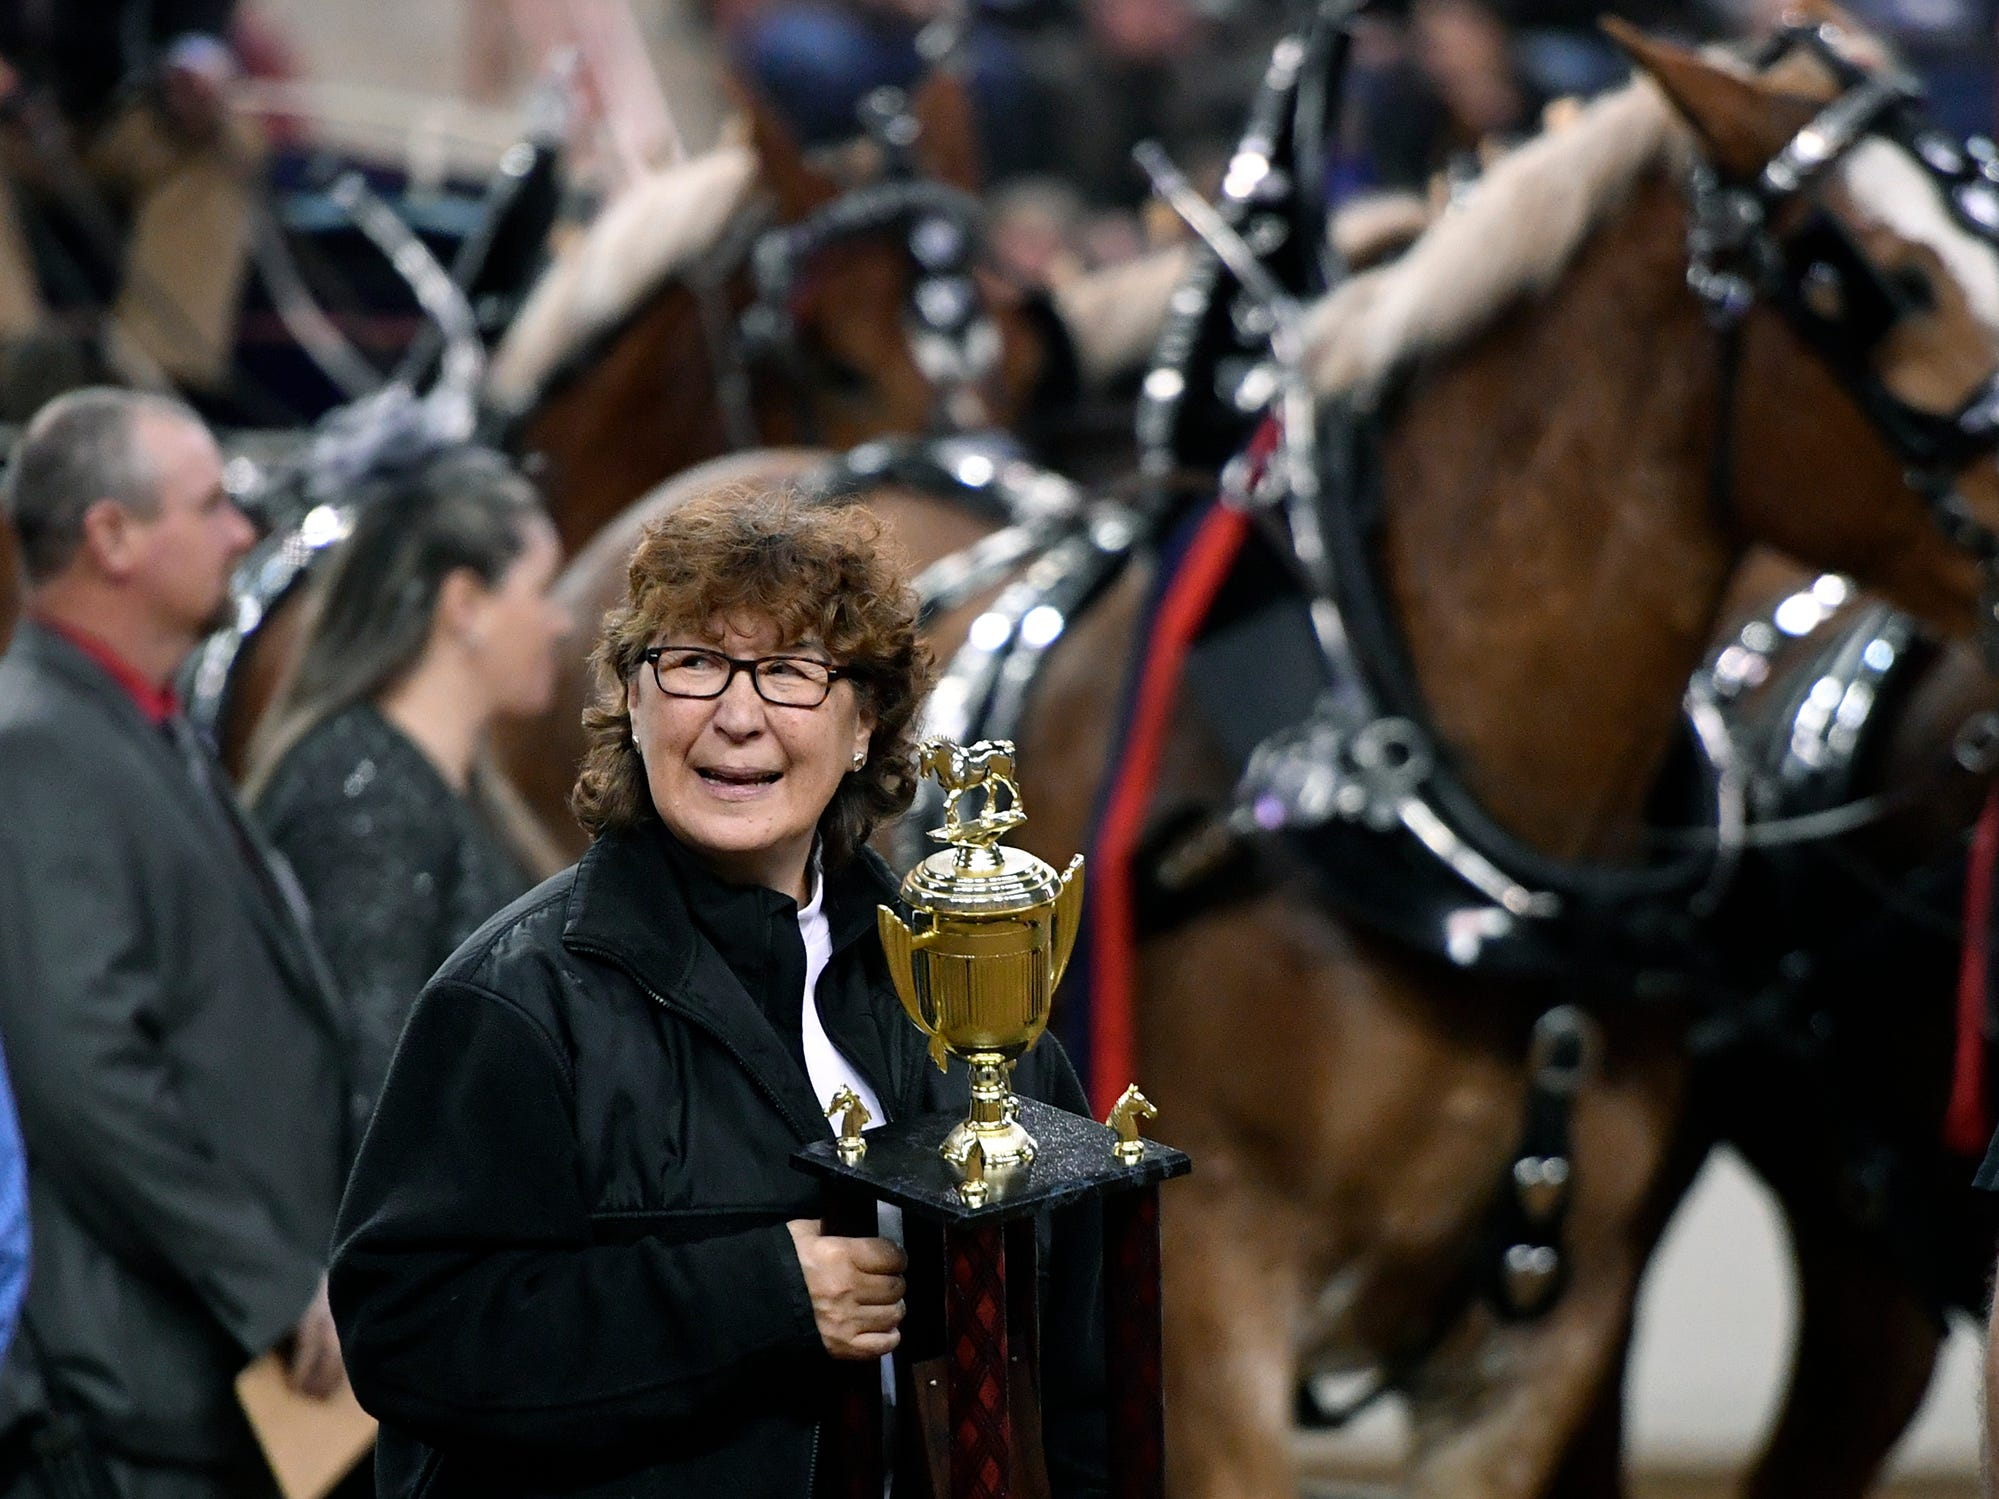 Wanda Waugh, widow of former PA Senator Mike Waugh, waits to present the Mike Waugh Memorial Award to the first place finisher of the four horse Draft Horse Competition during the 103rd Pennsylvania Farm Show, Sunday, January 6, 2019. John A. Pavoncello photo